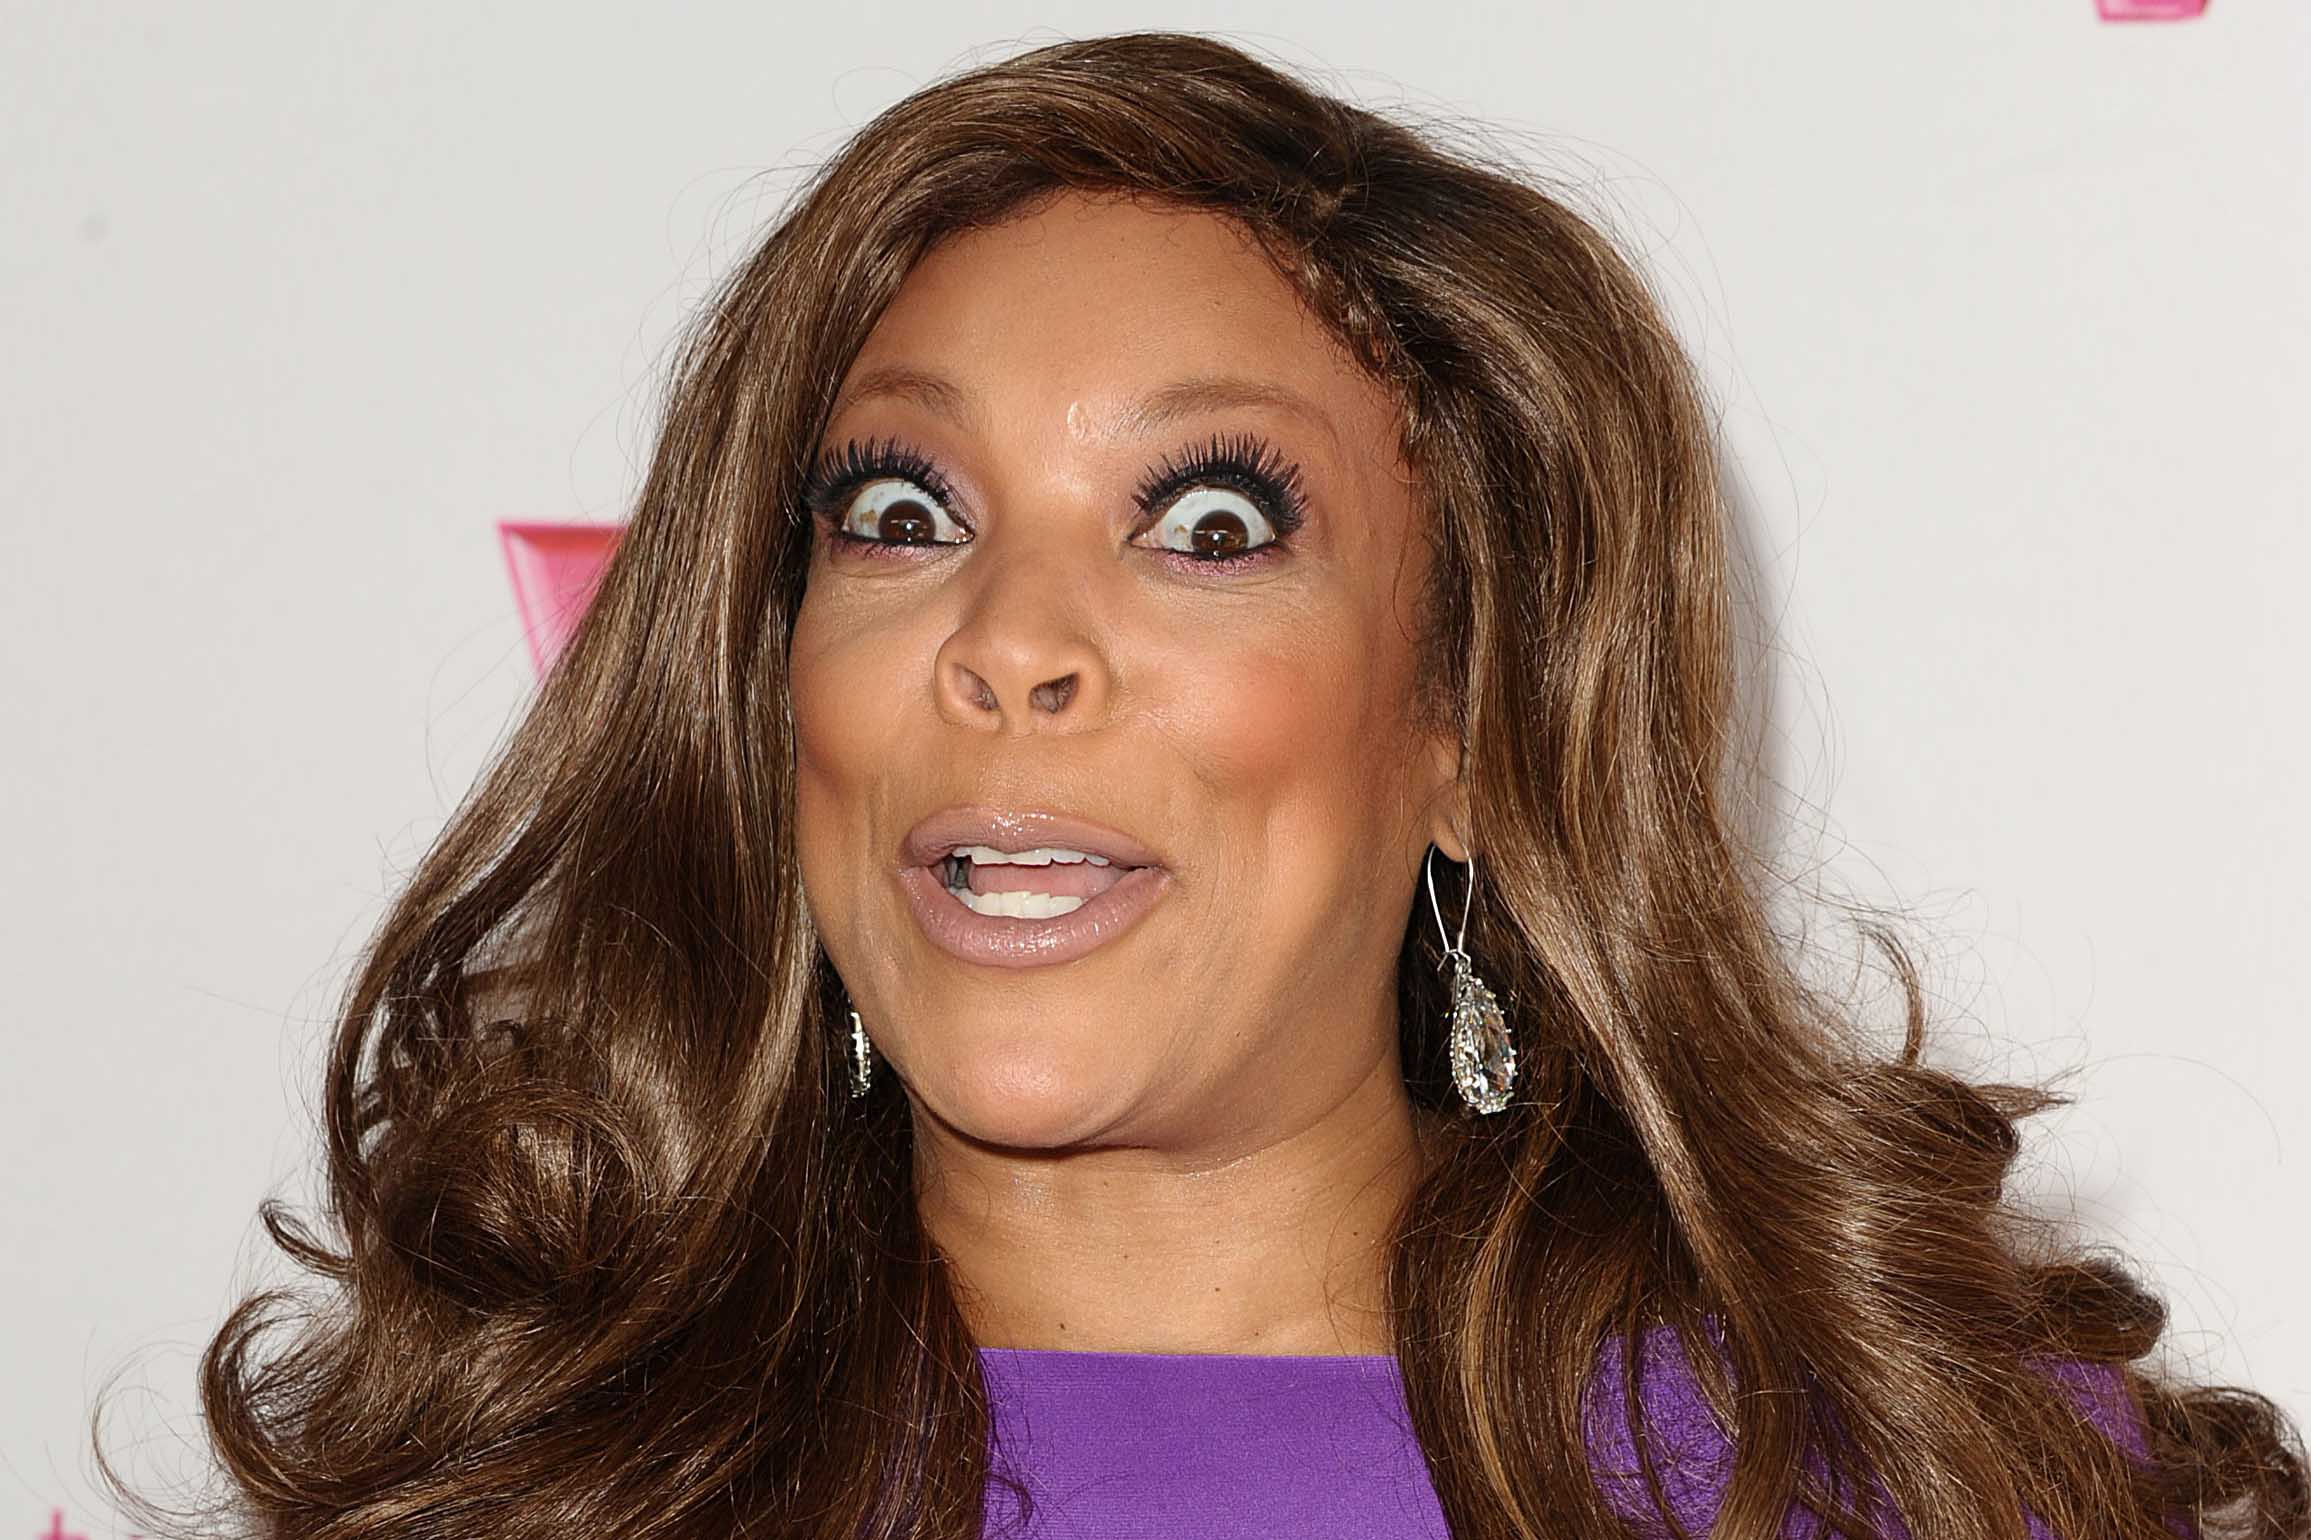 celebrity feuds started by wendy williams dish nation